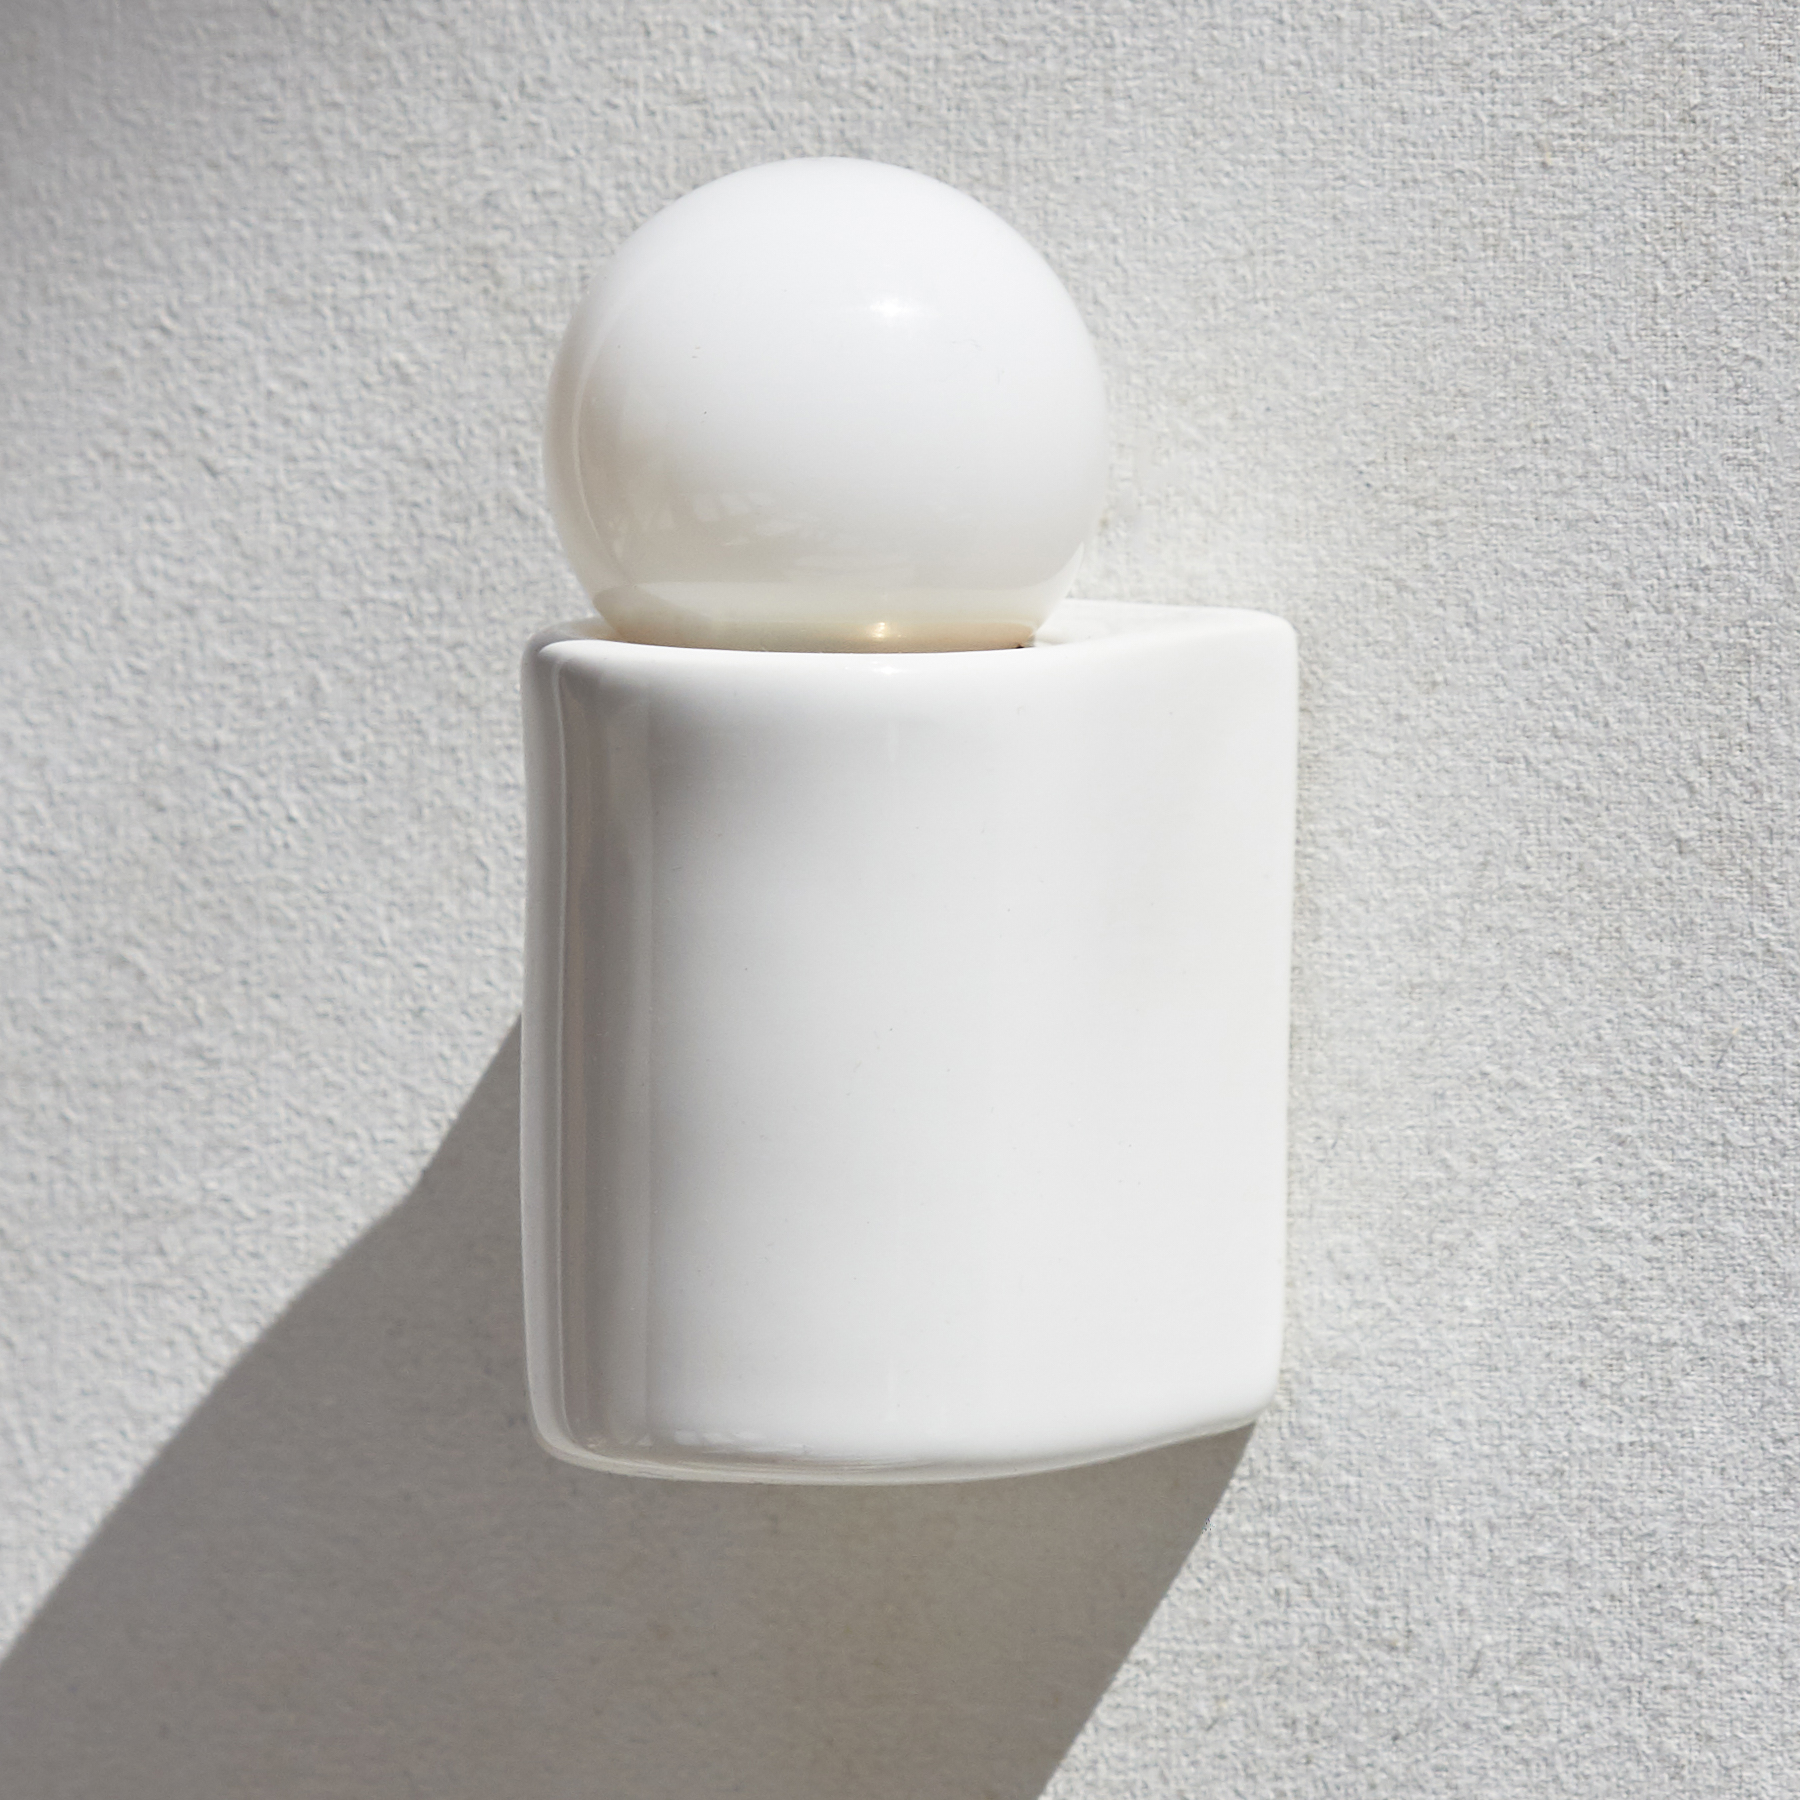 Porcelain Series Shallow Wall Light by Michael Anastassiades |  MA-WPS-W-D1-UP